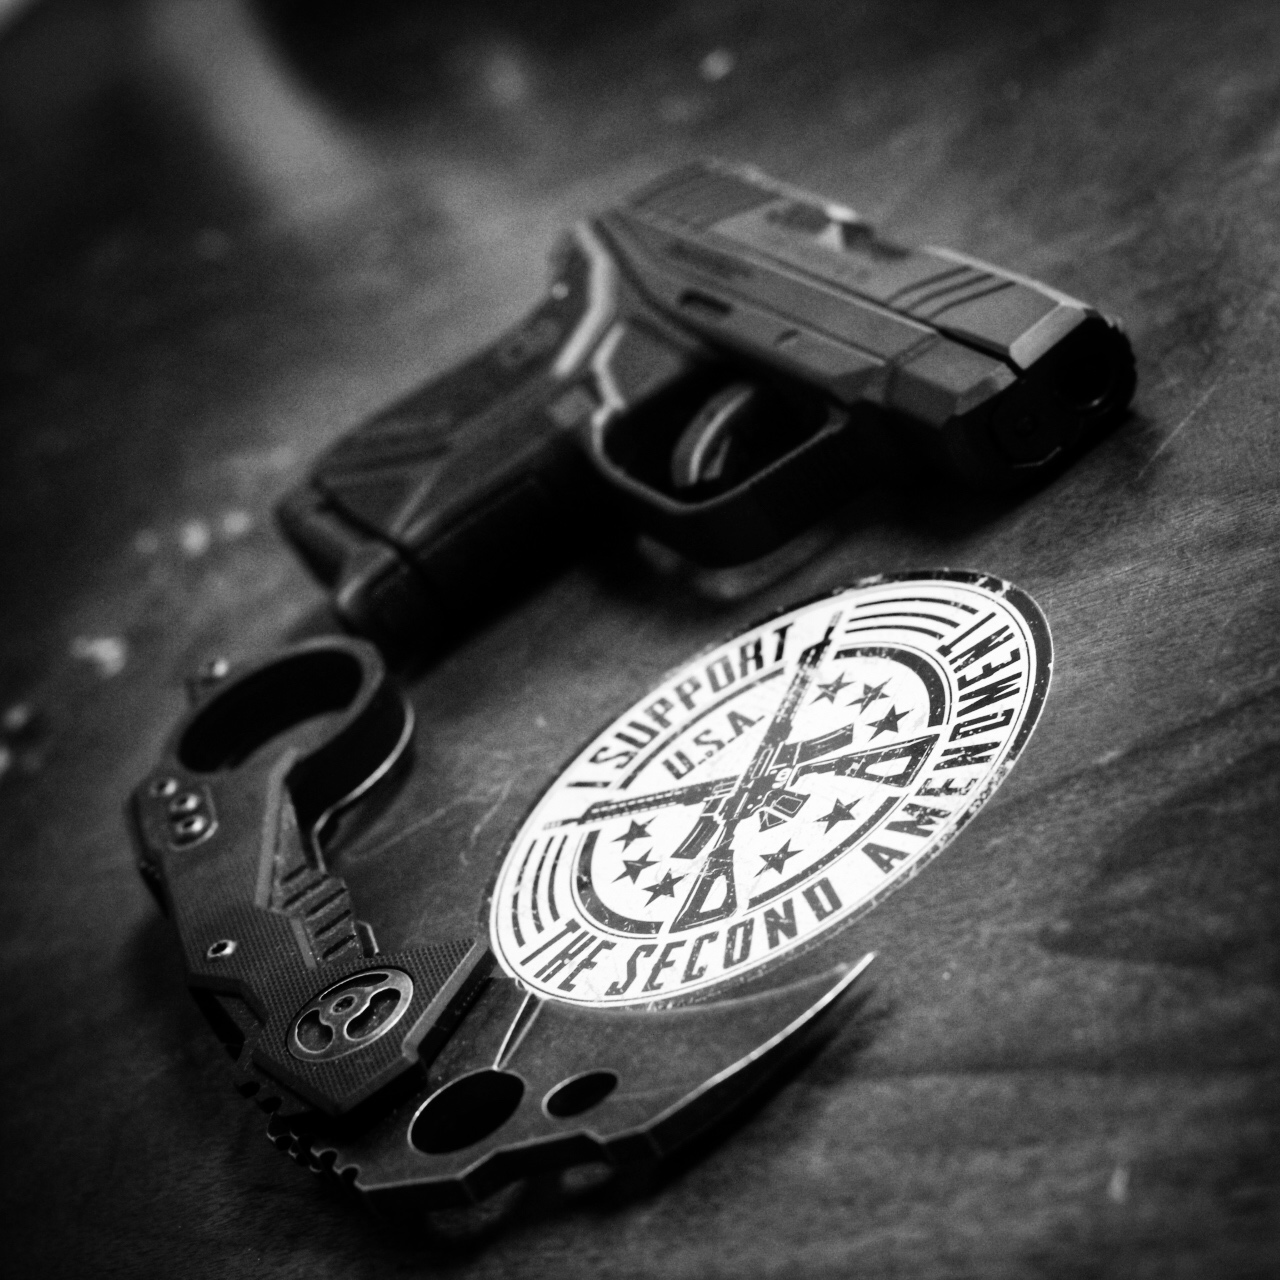 2nd-amendment-ruger-qtrmstr-knife.jpg